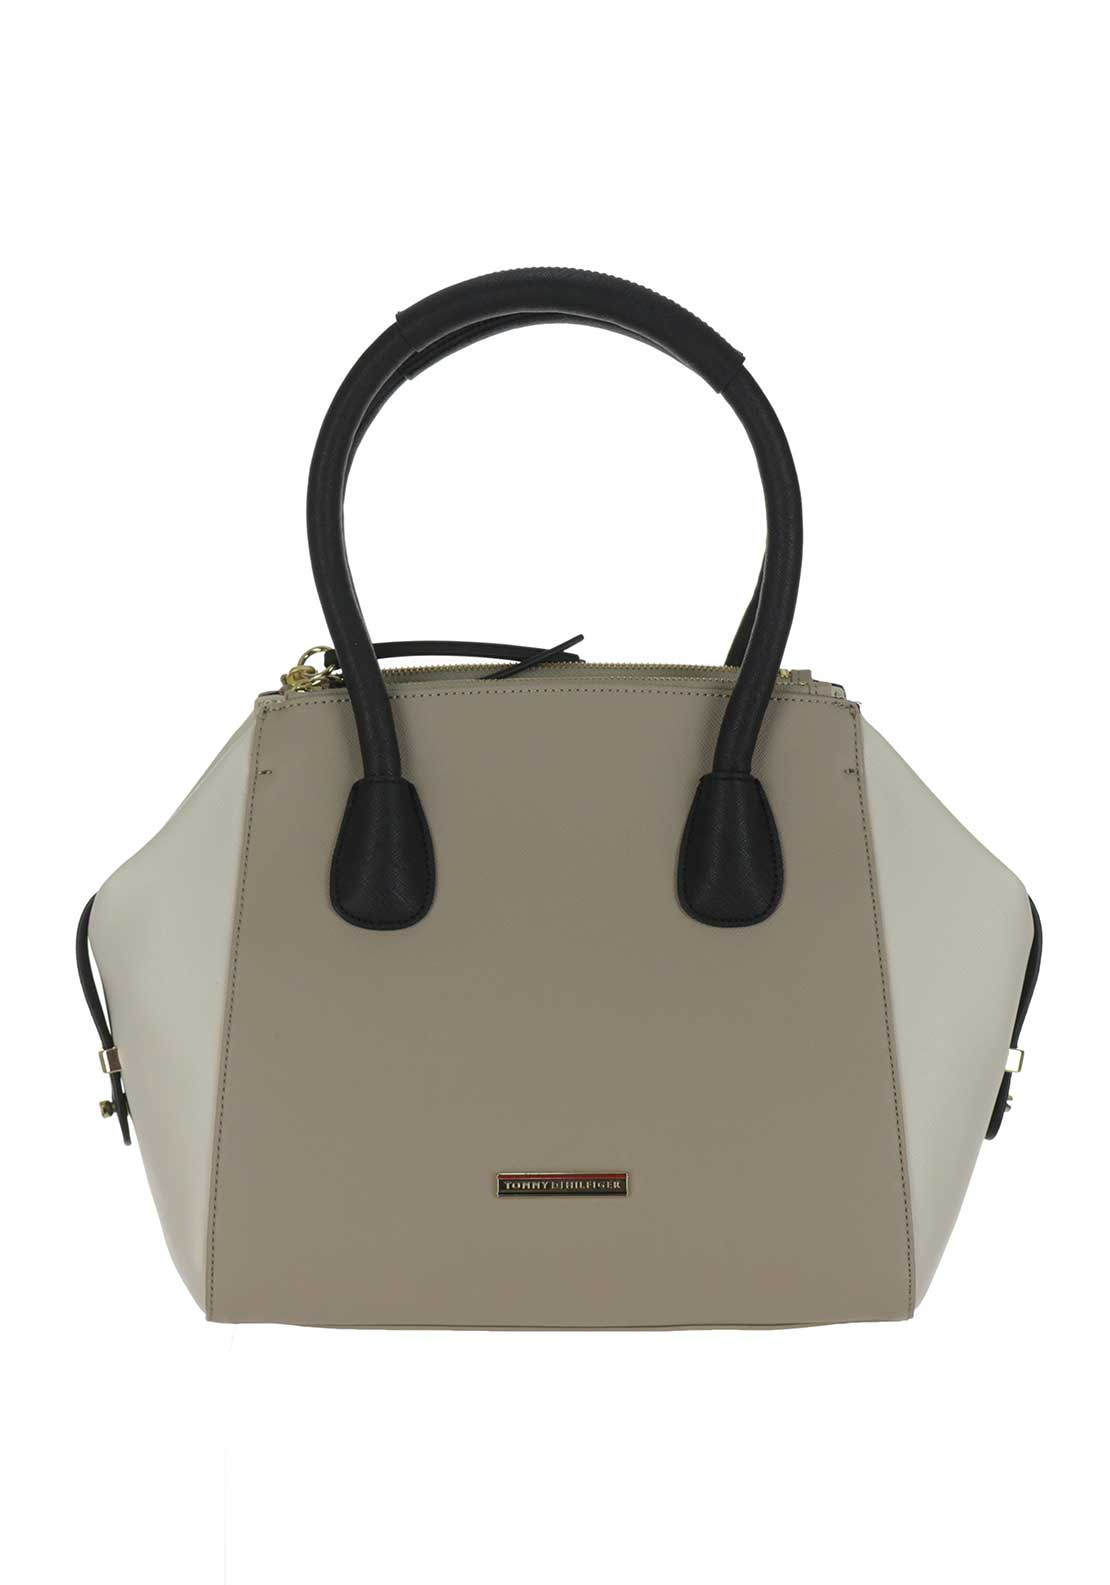 Tommy Hilfiger Saffiano Colourblock Duffle Bag, Dune, Turtledove & Black